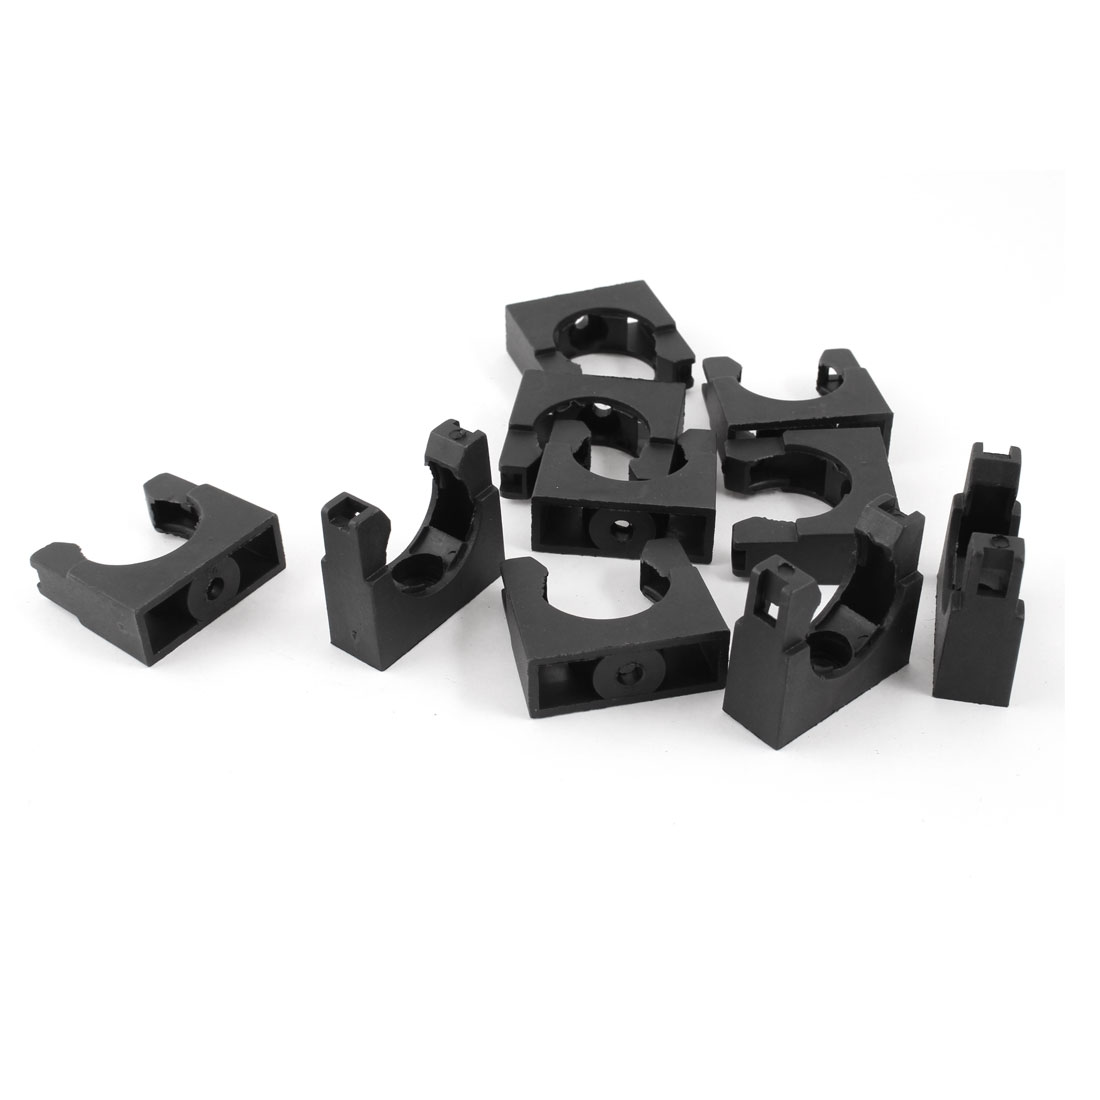 10 Pieces Plastic Mounting Bracket Black for 25mm Corrugated Tubing